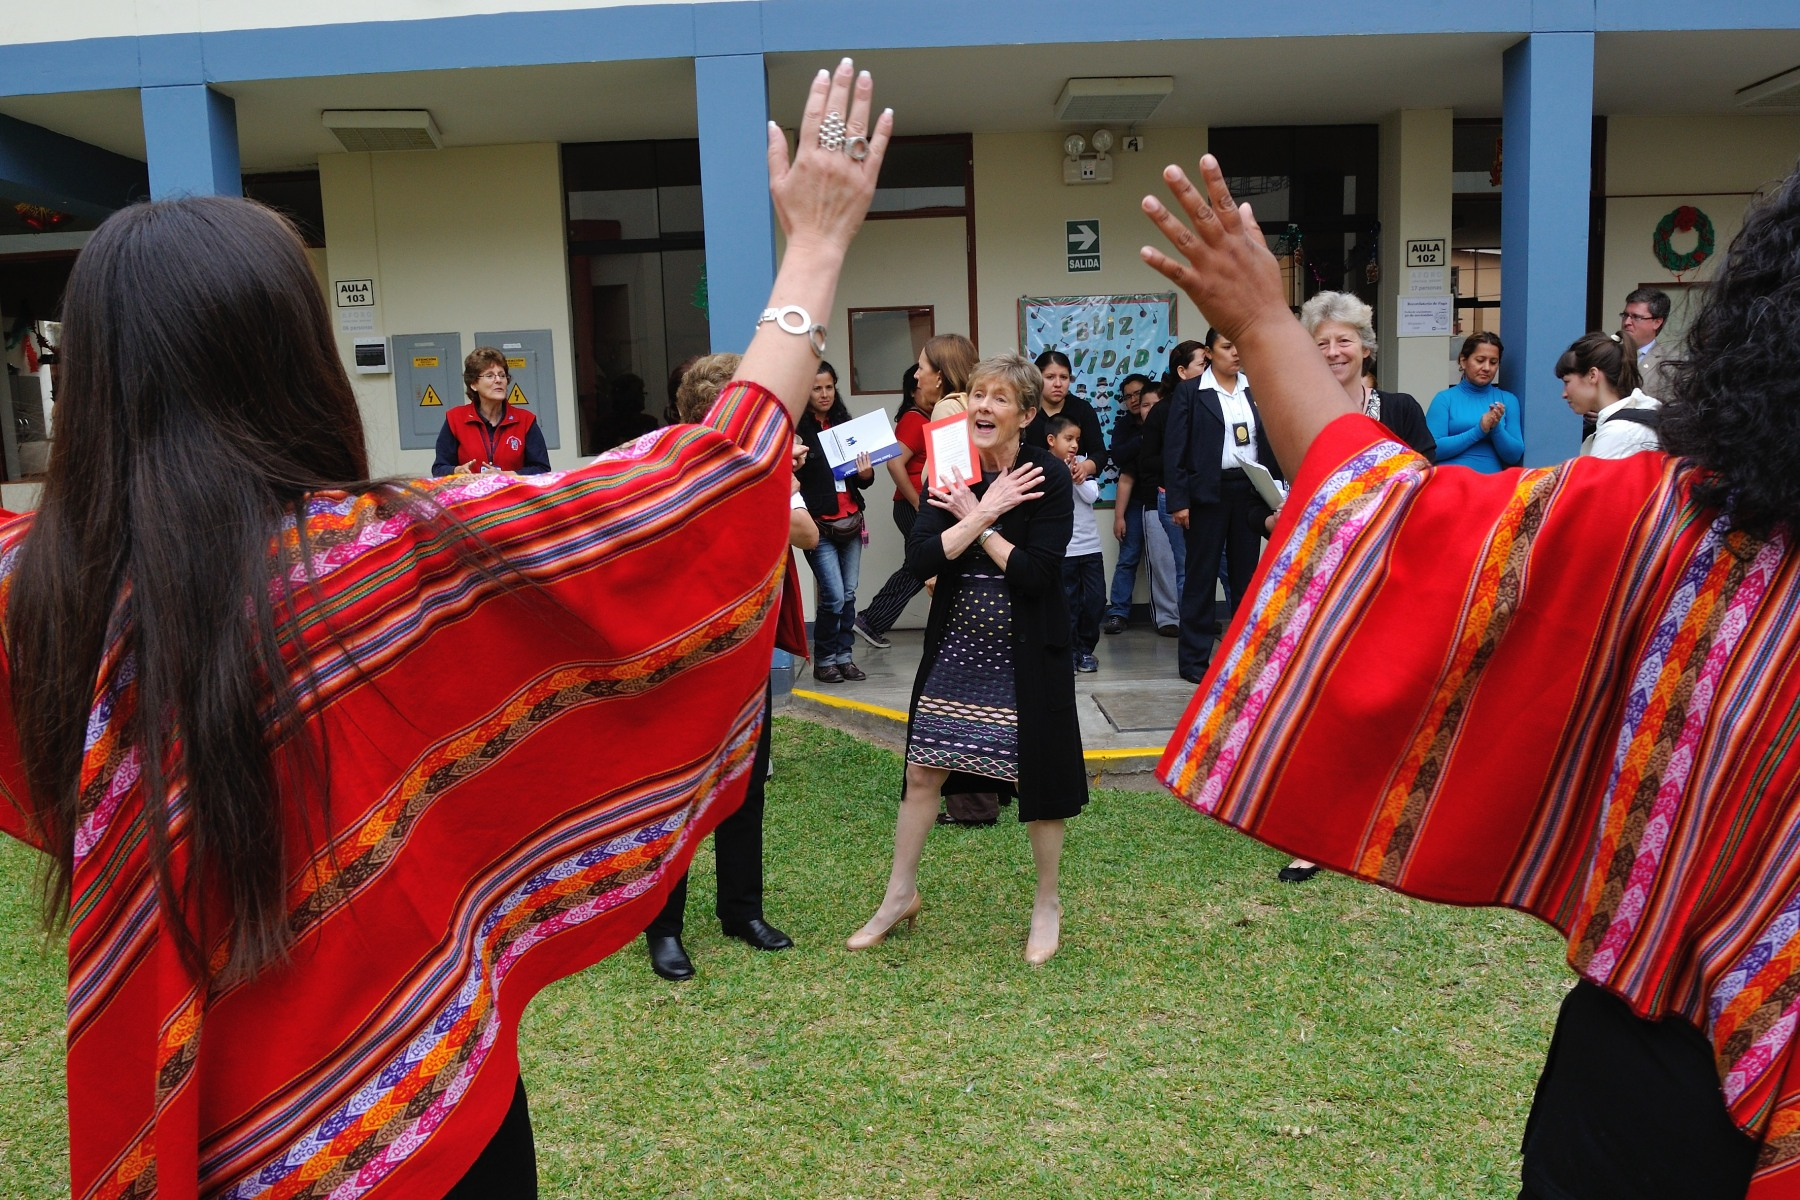 Her Excellency danced with mothers who benefit from the services offered at the centre.